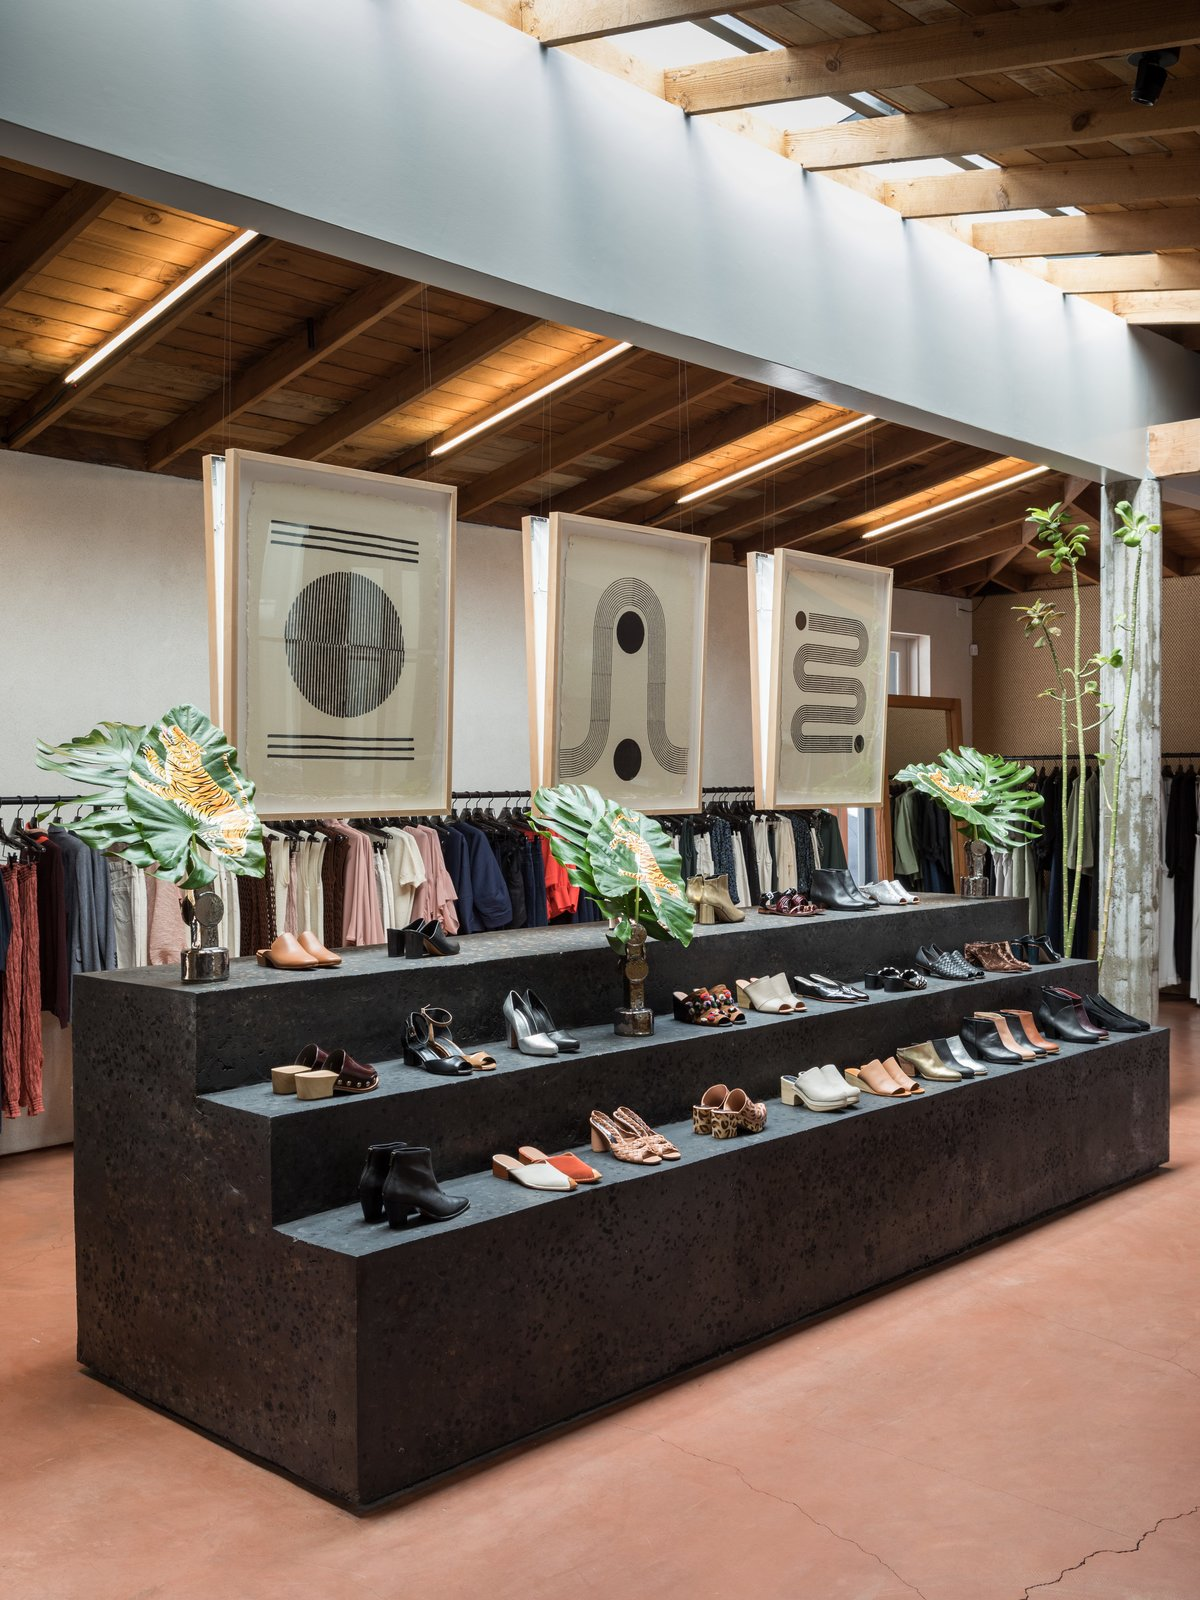 Block Shop prints perfectly integrate into the earthiness of Rachel Comey's Los Angeles boutique.